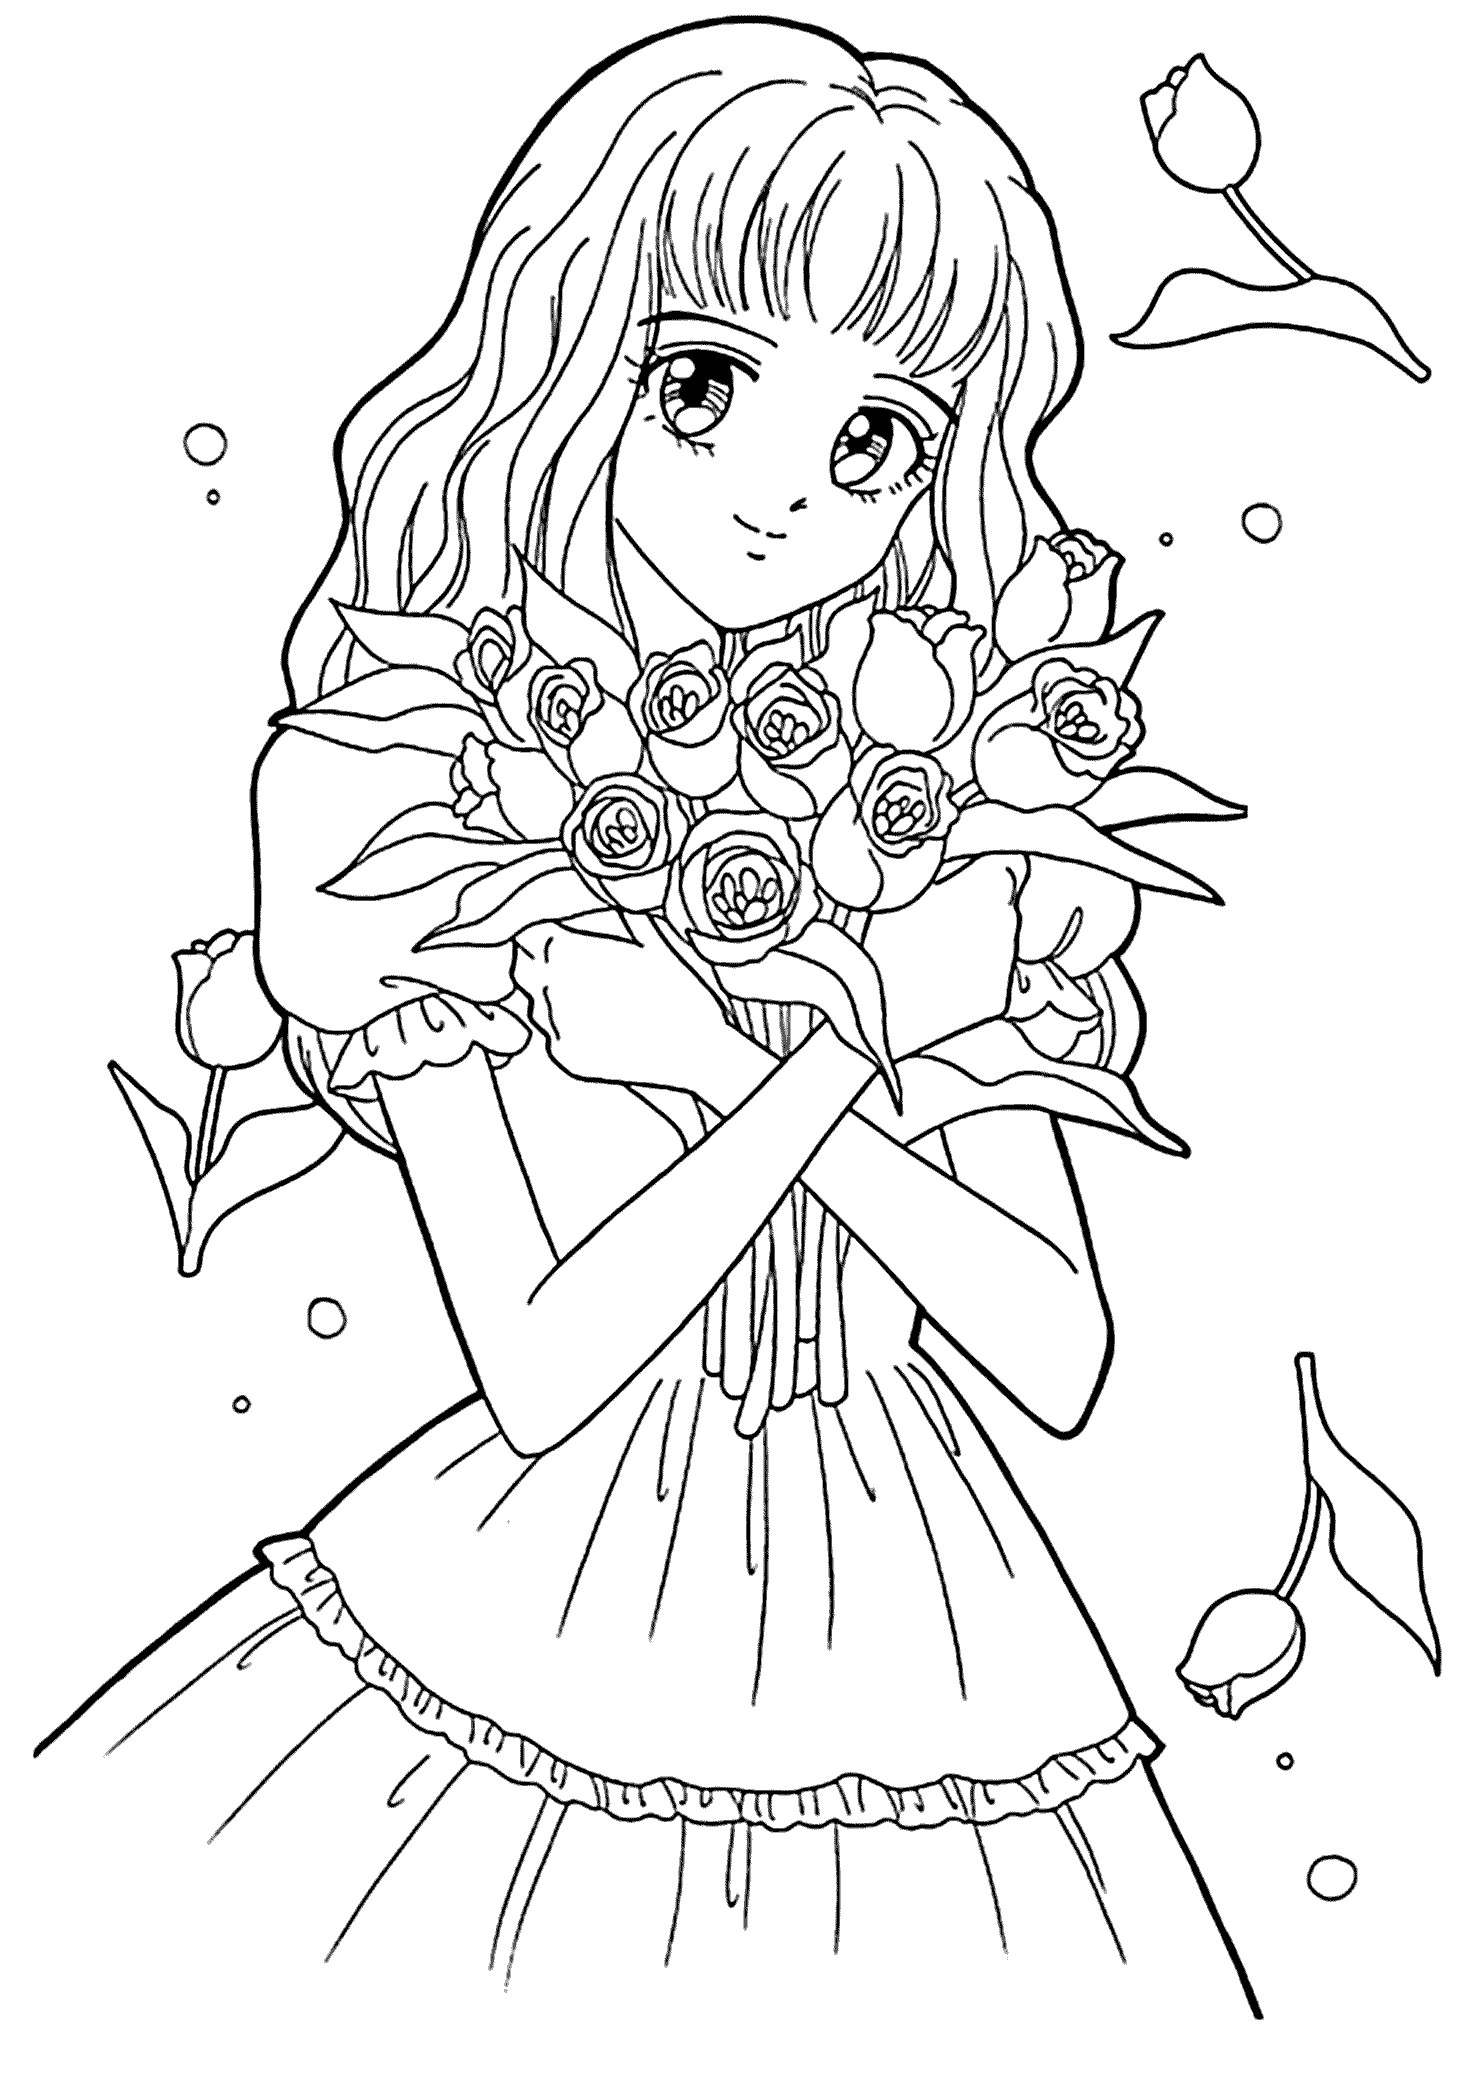 coloring sheet girl outline of girl coloring pages png image transparent png sheet coloring girl